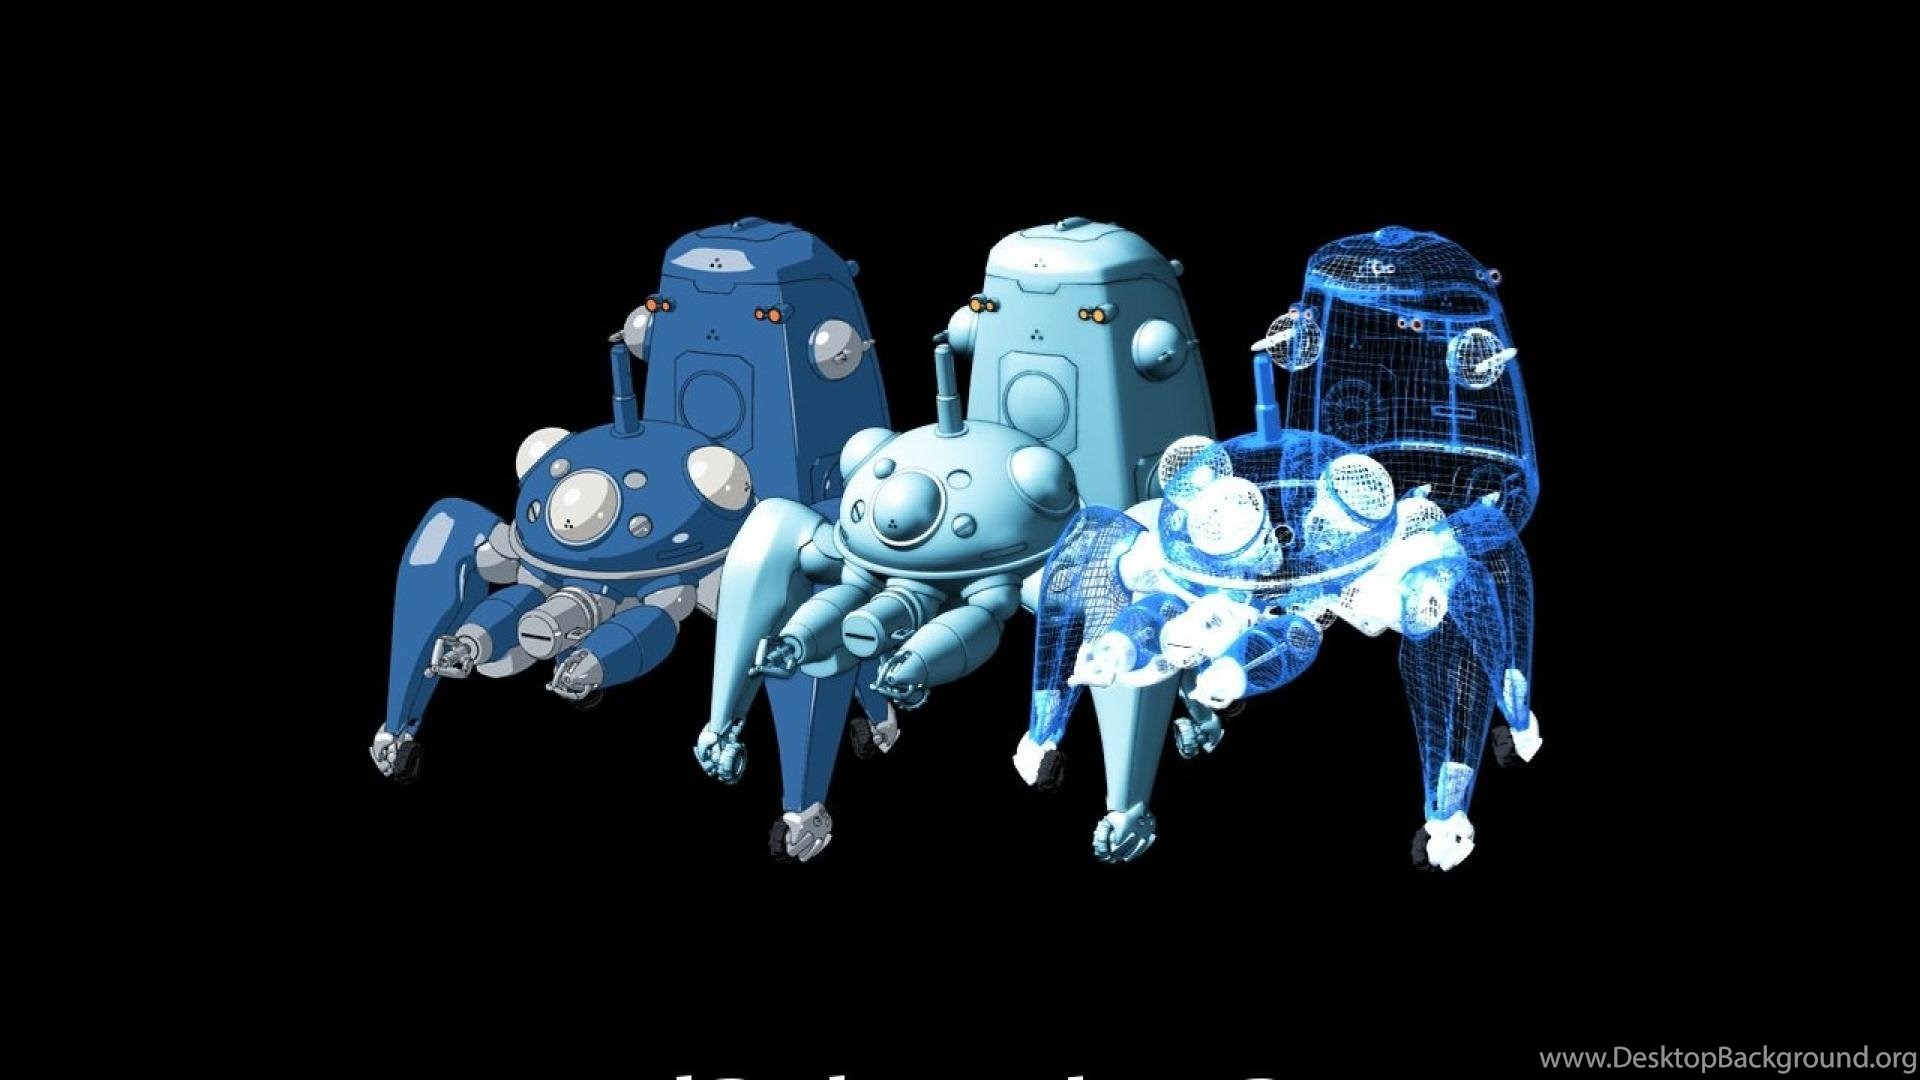 Tachikoma Ghost In The Shell Hd Wallpapers Desktop Background